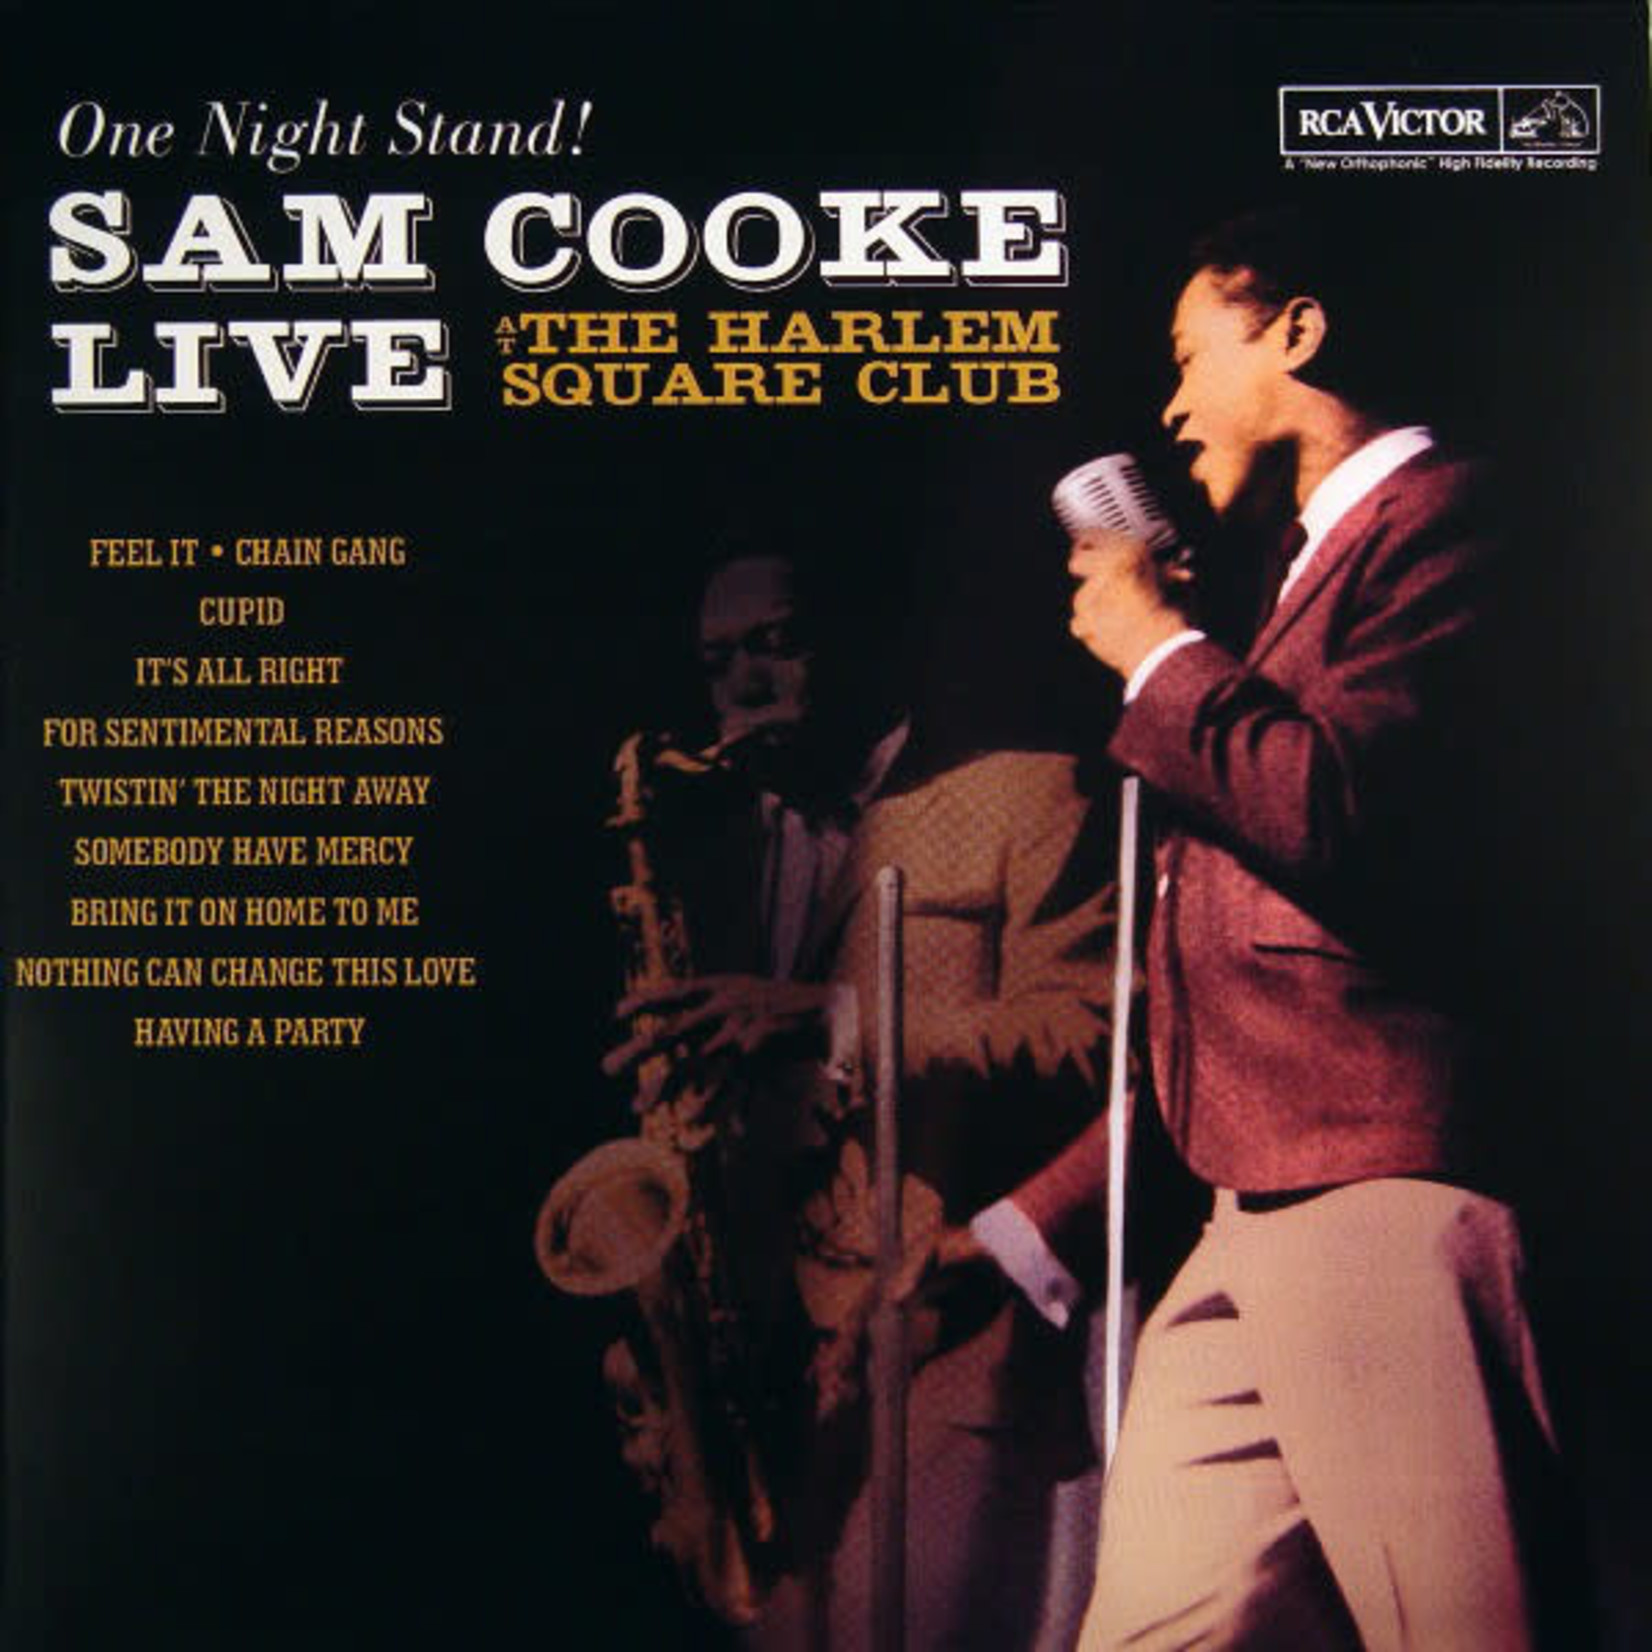 [New] Cooke, Sam: Sam Cooke Live At The Harlem Square Club (One Night Stand!)